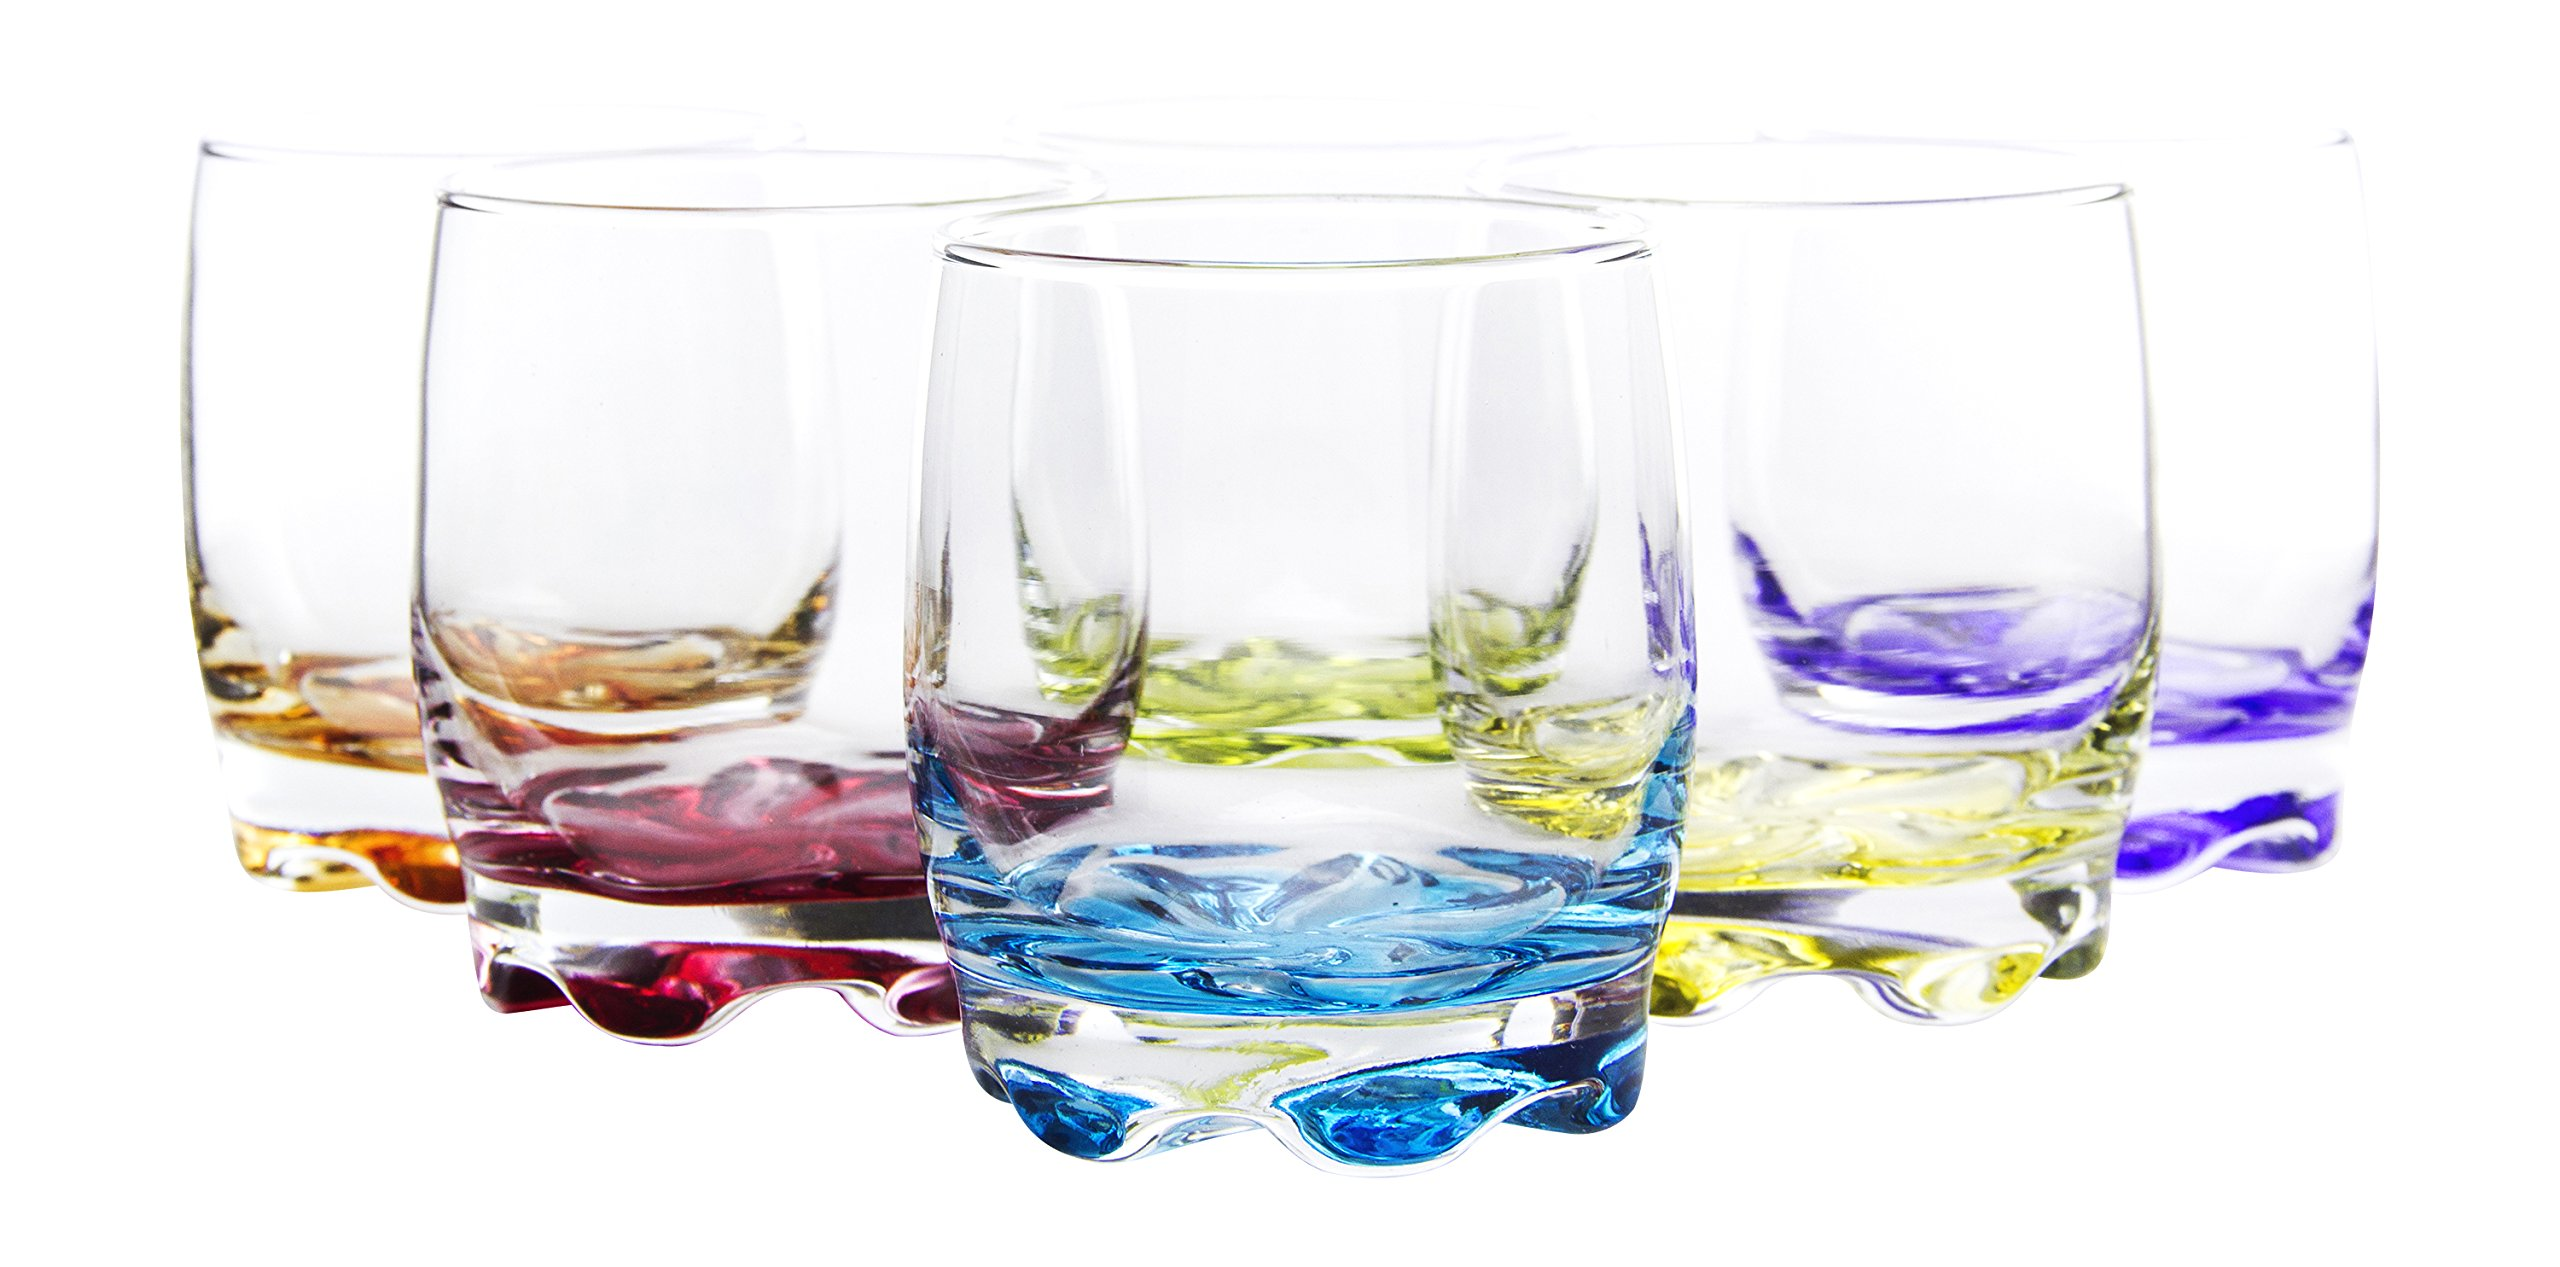 Vibrant Splash Water/Beverage Glasses, 9.75 Ounce, Set of 6, 3.5 Inches Each